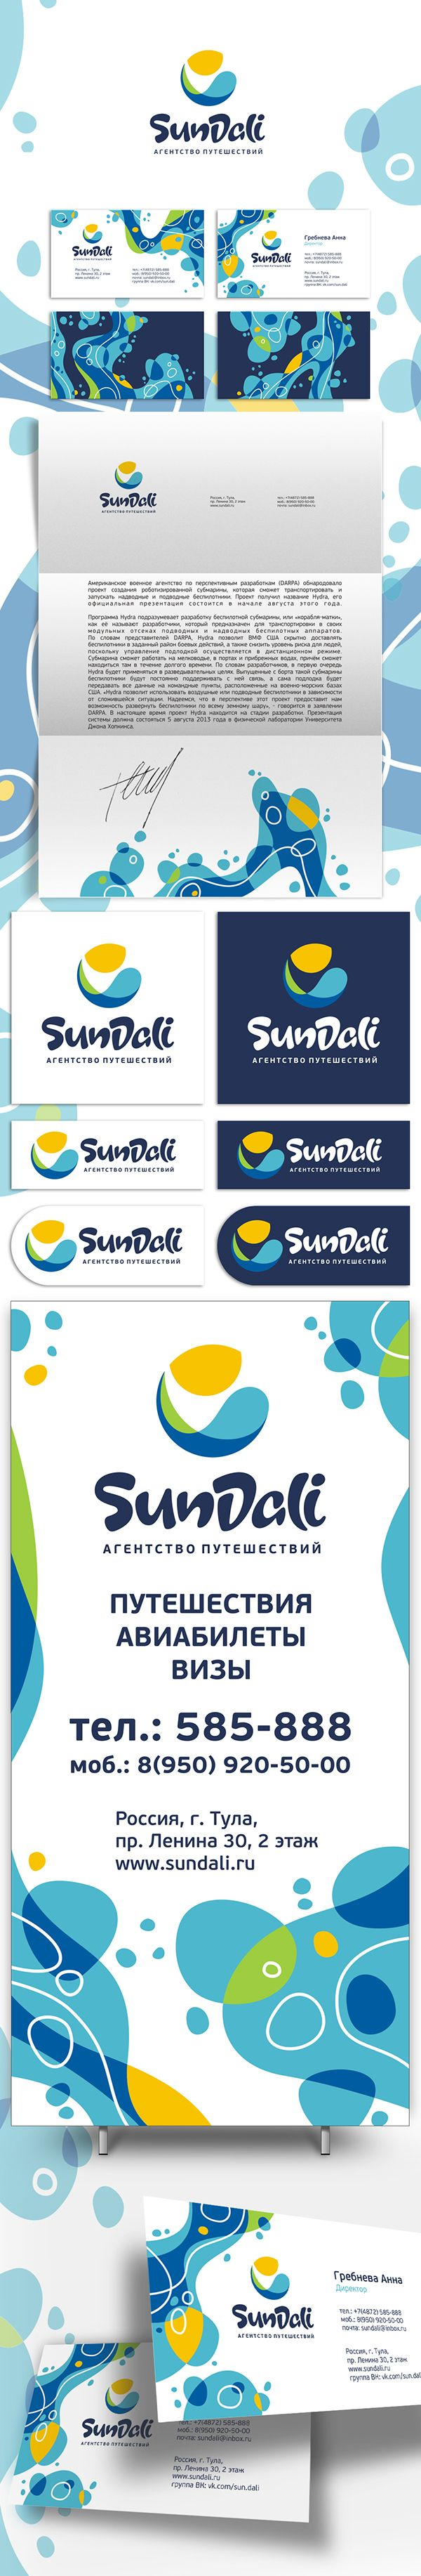 logo and corporate identity for a travel agency